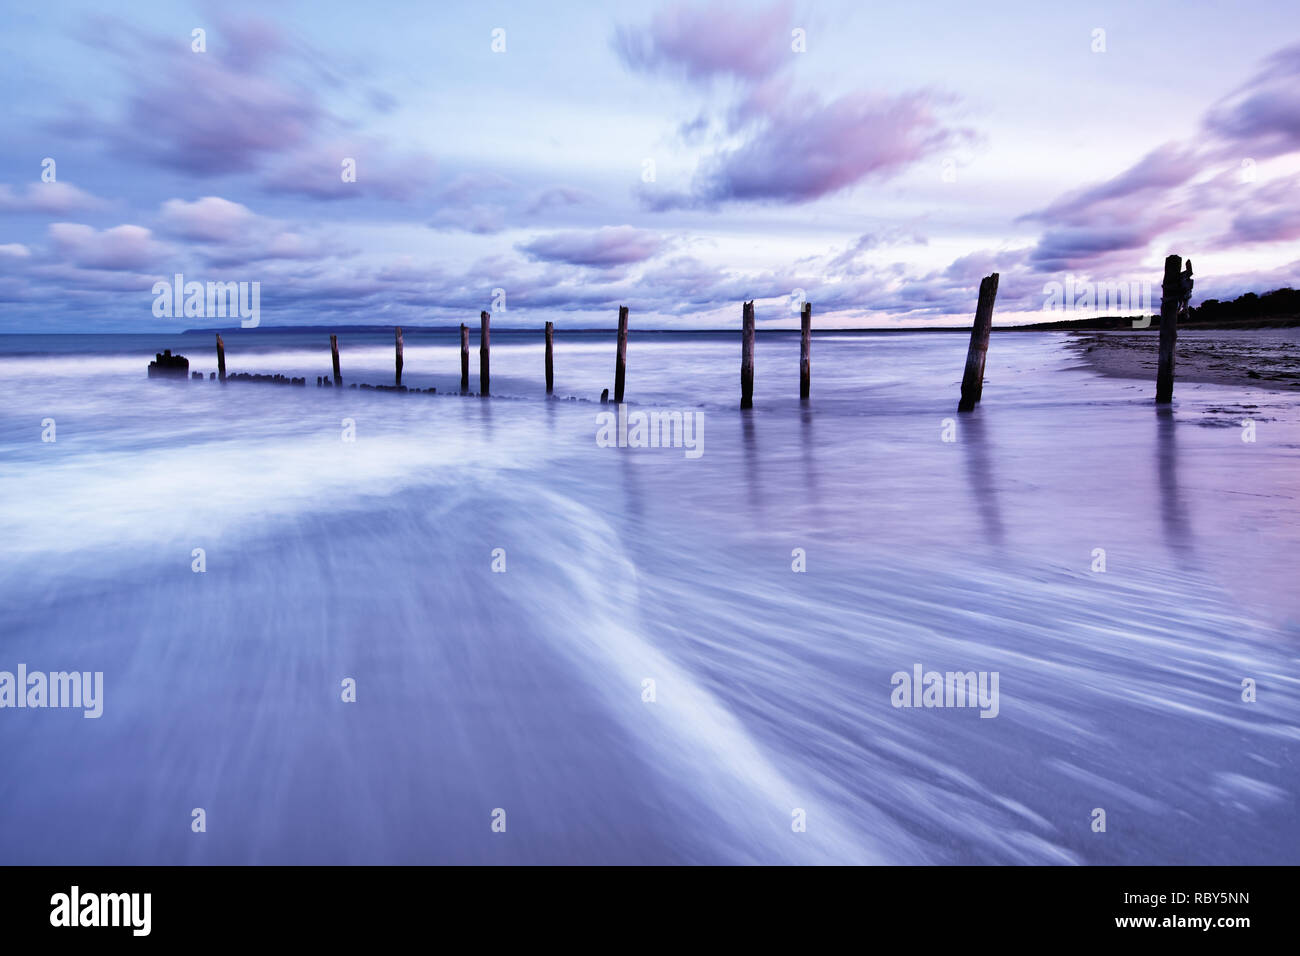 Scenic view of wooden poles on a beach, the movement of the waves is shown in addition to a colorful evening sky - Location: Baltic Sea, Rügen Island - Stock Image